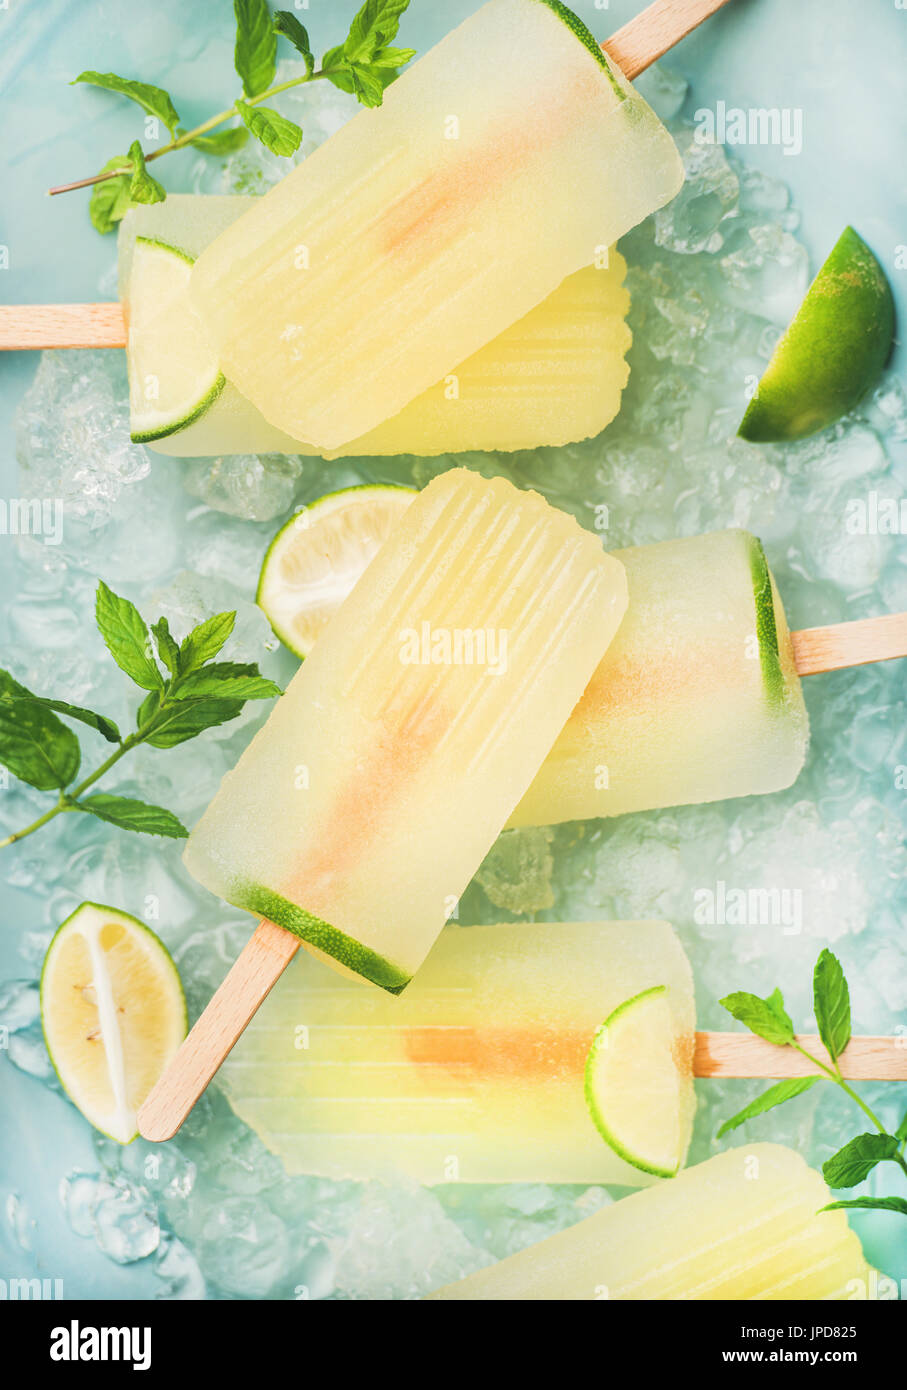 Summer lemonade popsicles with lime and chipped ice, top view - Stock Image